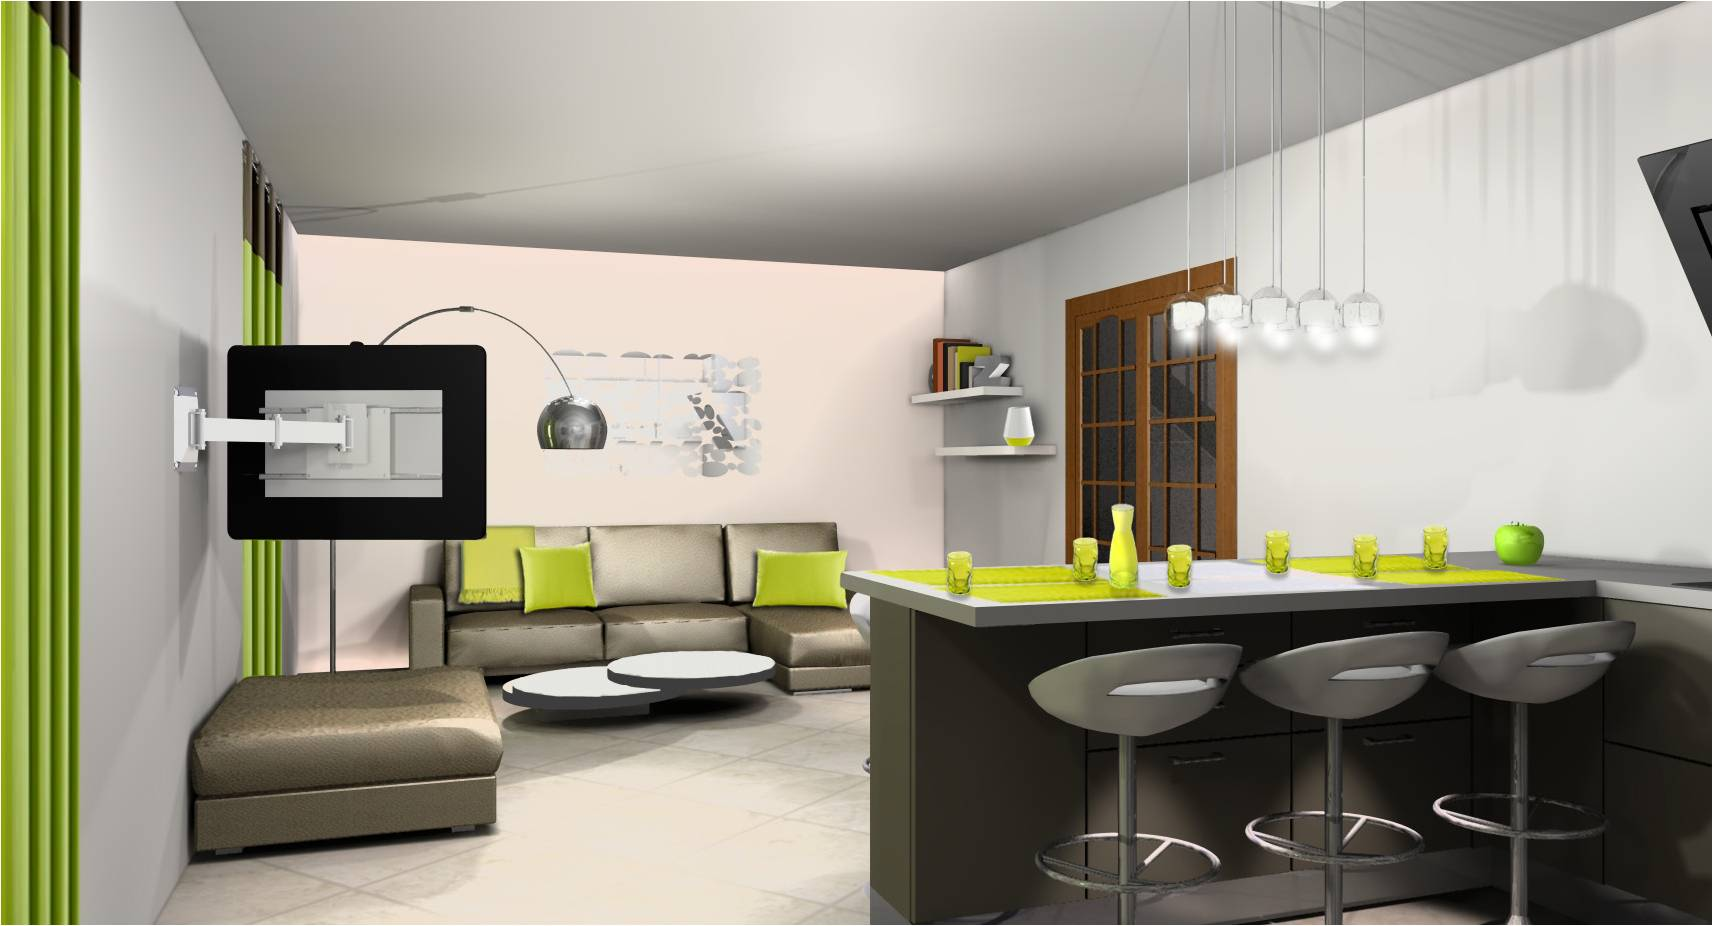 D co cuisine americaine exemples d 39 am nagements for Idee amenagement salon cuisine americaine